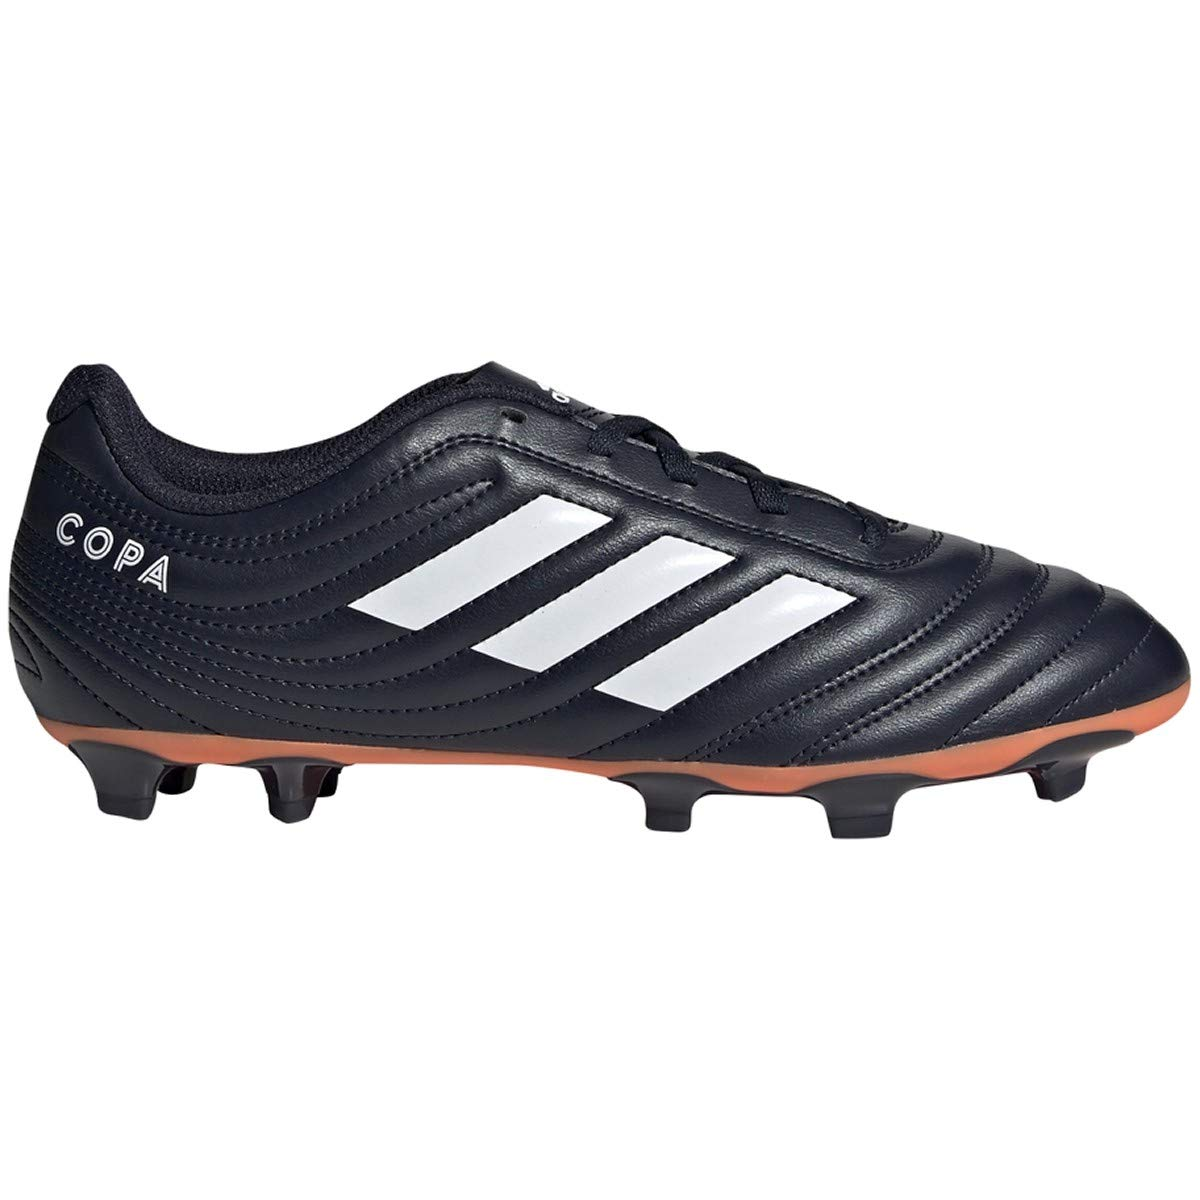 adidas COPA 19.4 FG W Soccer Shoe, Legend Ink/FTWR White/hi-res Coral, 12 Standard US Width US by adidas